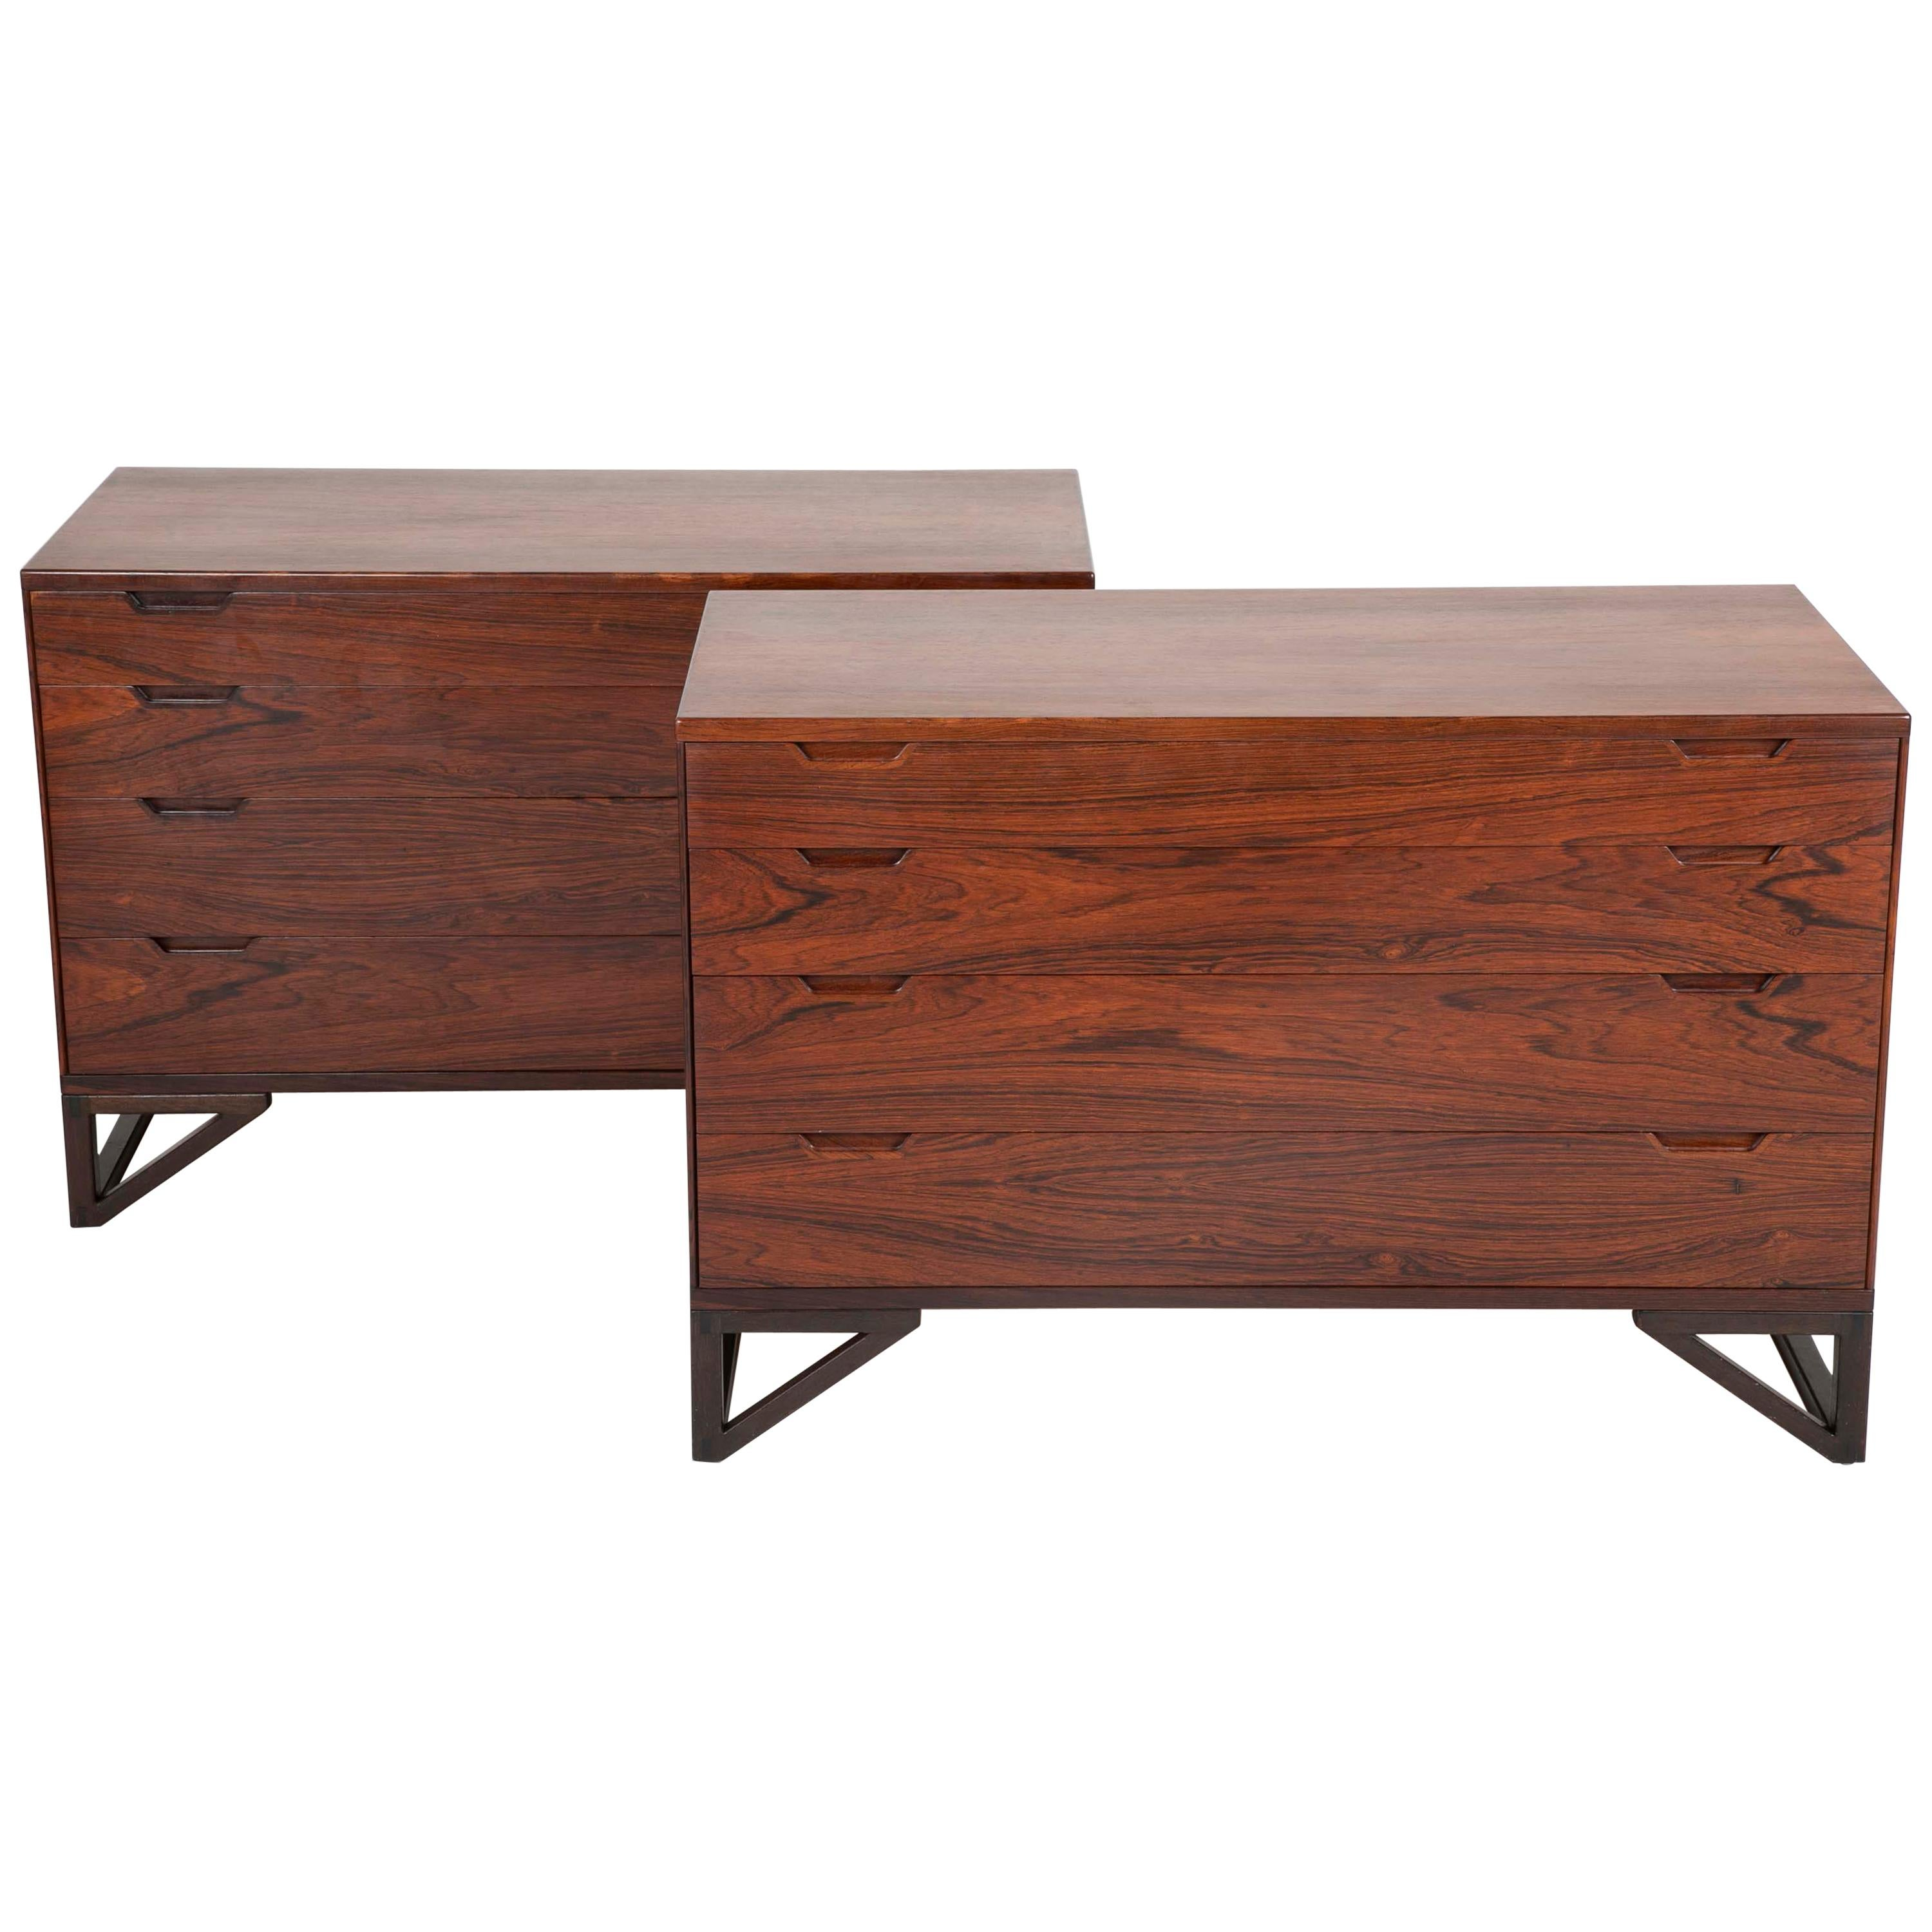 Pair of Midcentury Danish Rosewood Chests by Svend Langkilde